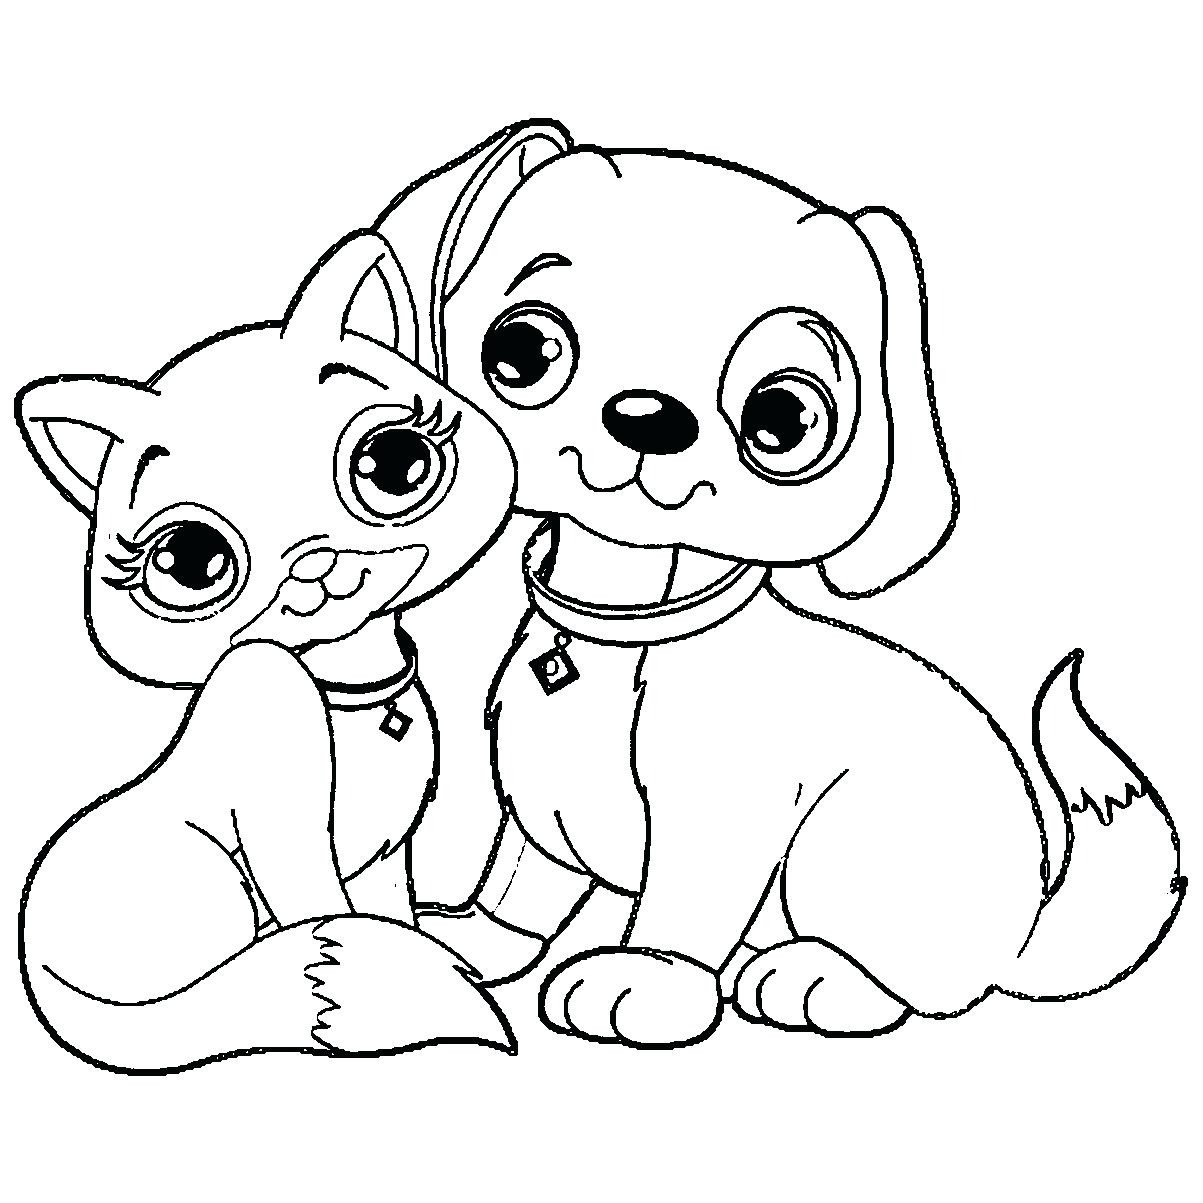 1203x1203 Coloring Page Dog And Cat Coloring Pages Beautiful Miniature